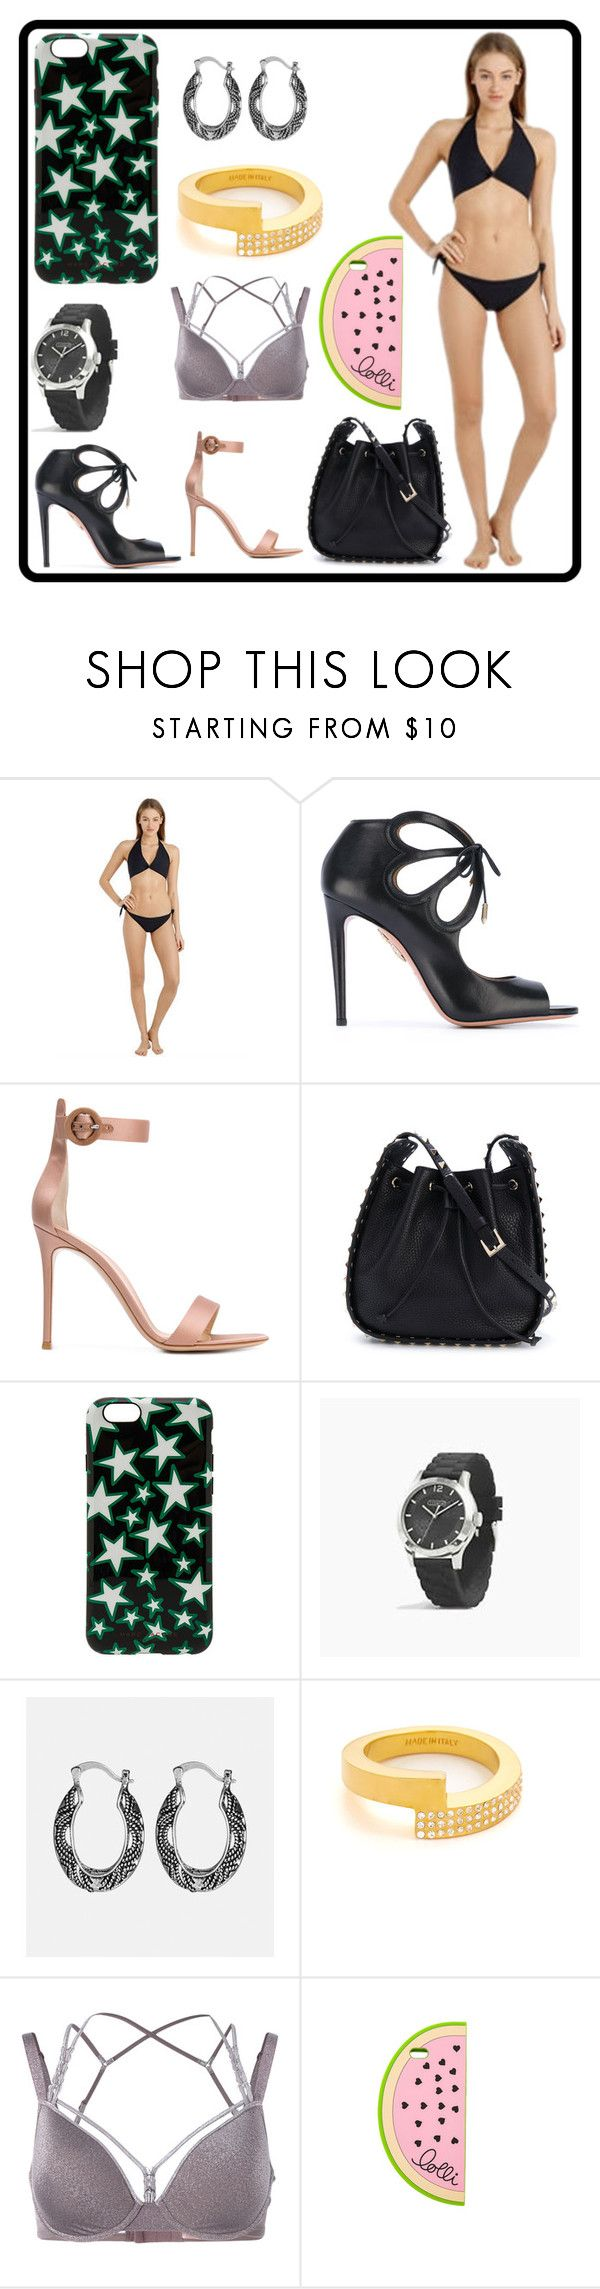 """""""Fashion forever"""" by denisee-denisee ❤ liked on Polyvore featuring Isole & Vulcani, Aquazzura, Gianvito Rossi, Valentino, Marc Jacobs, Coach, Avenue, Vita Fede, Marlies Dekkers and Lolli"""